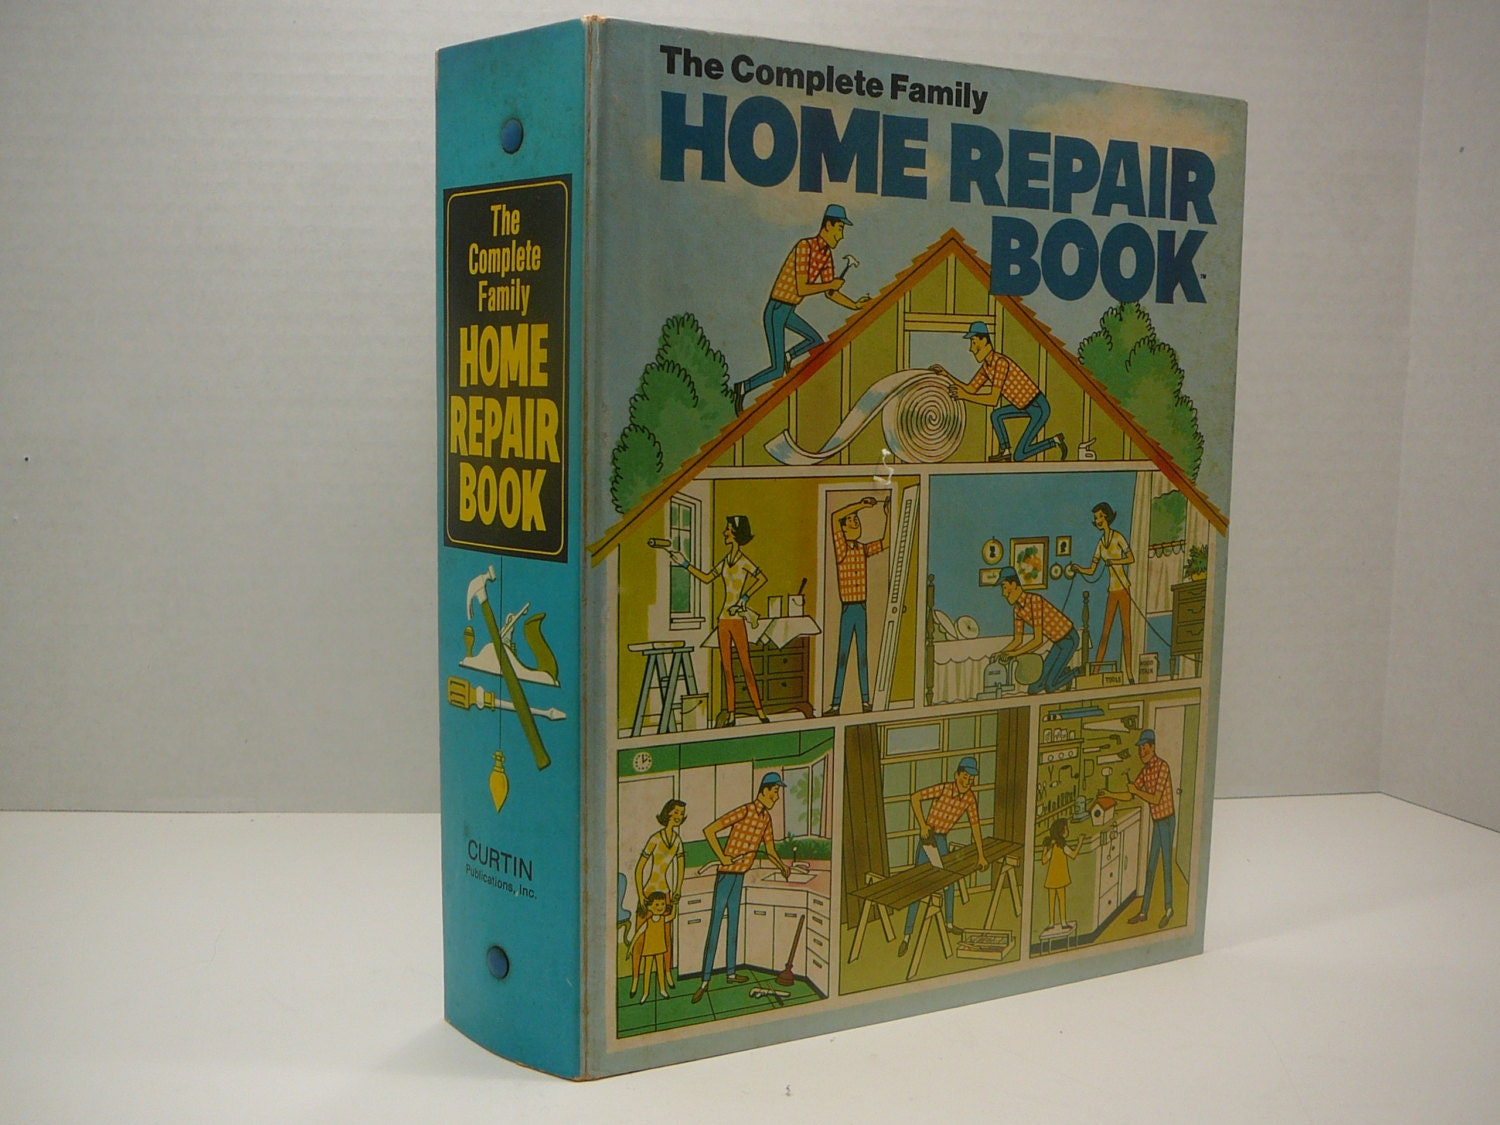 the complete family home repair book 1972 vintage home book